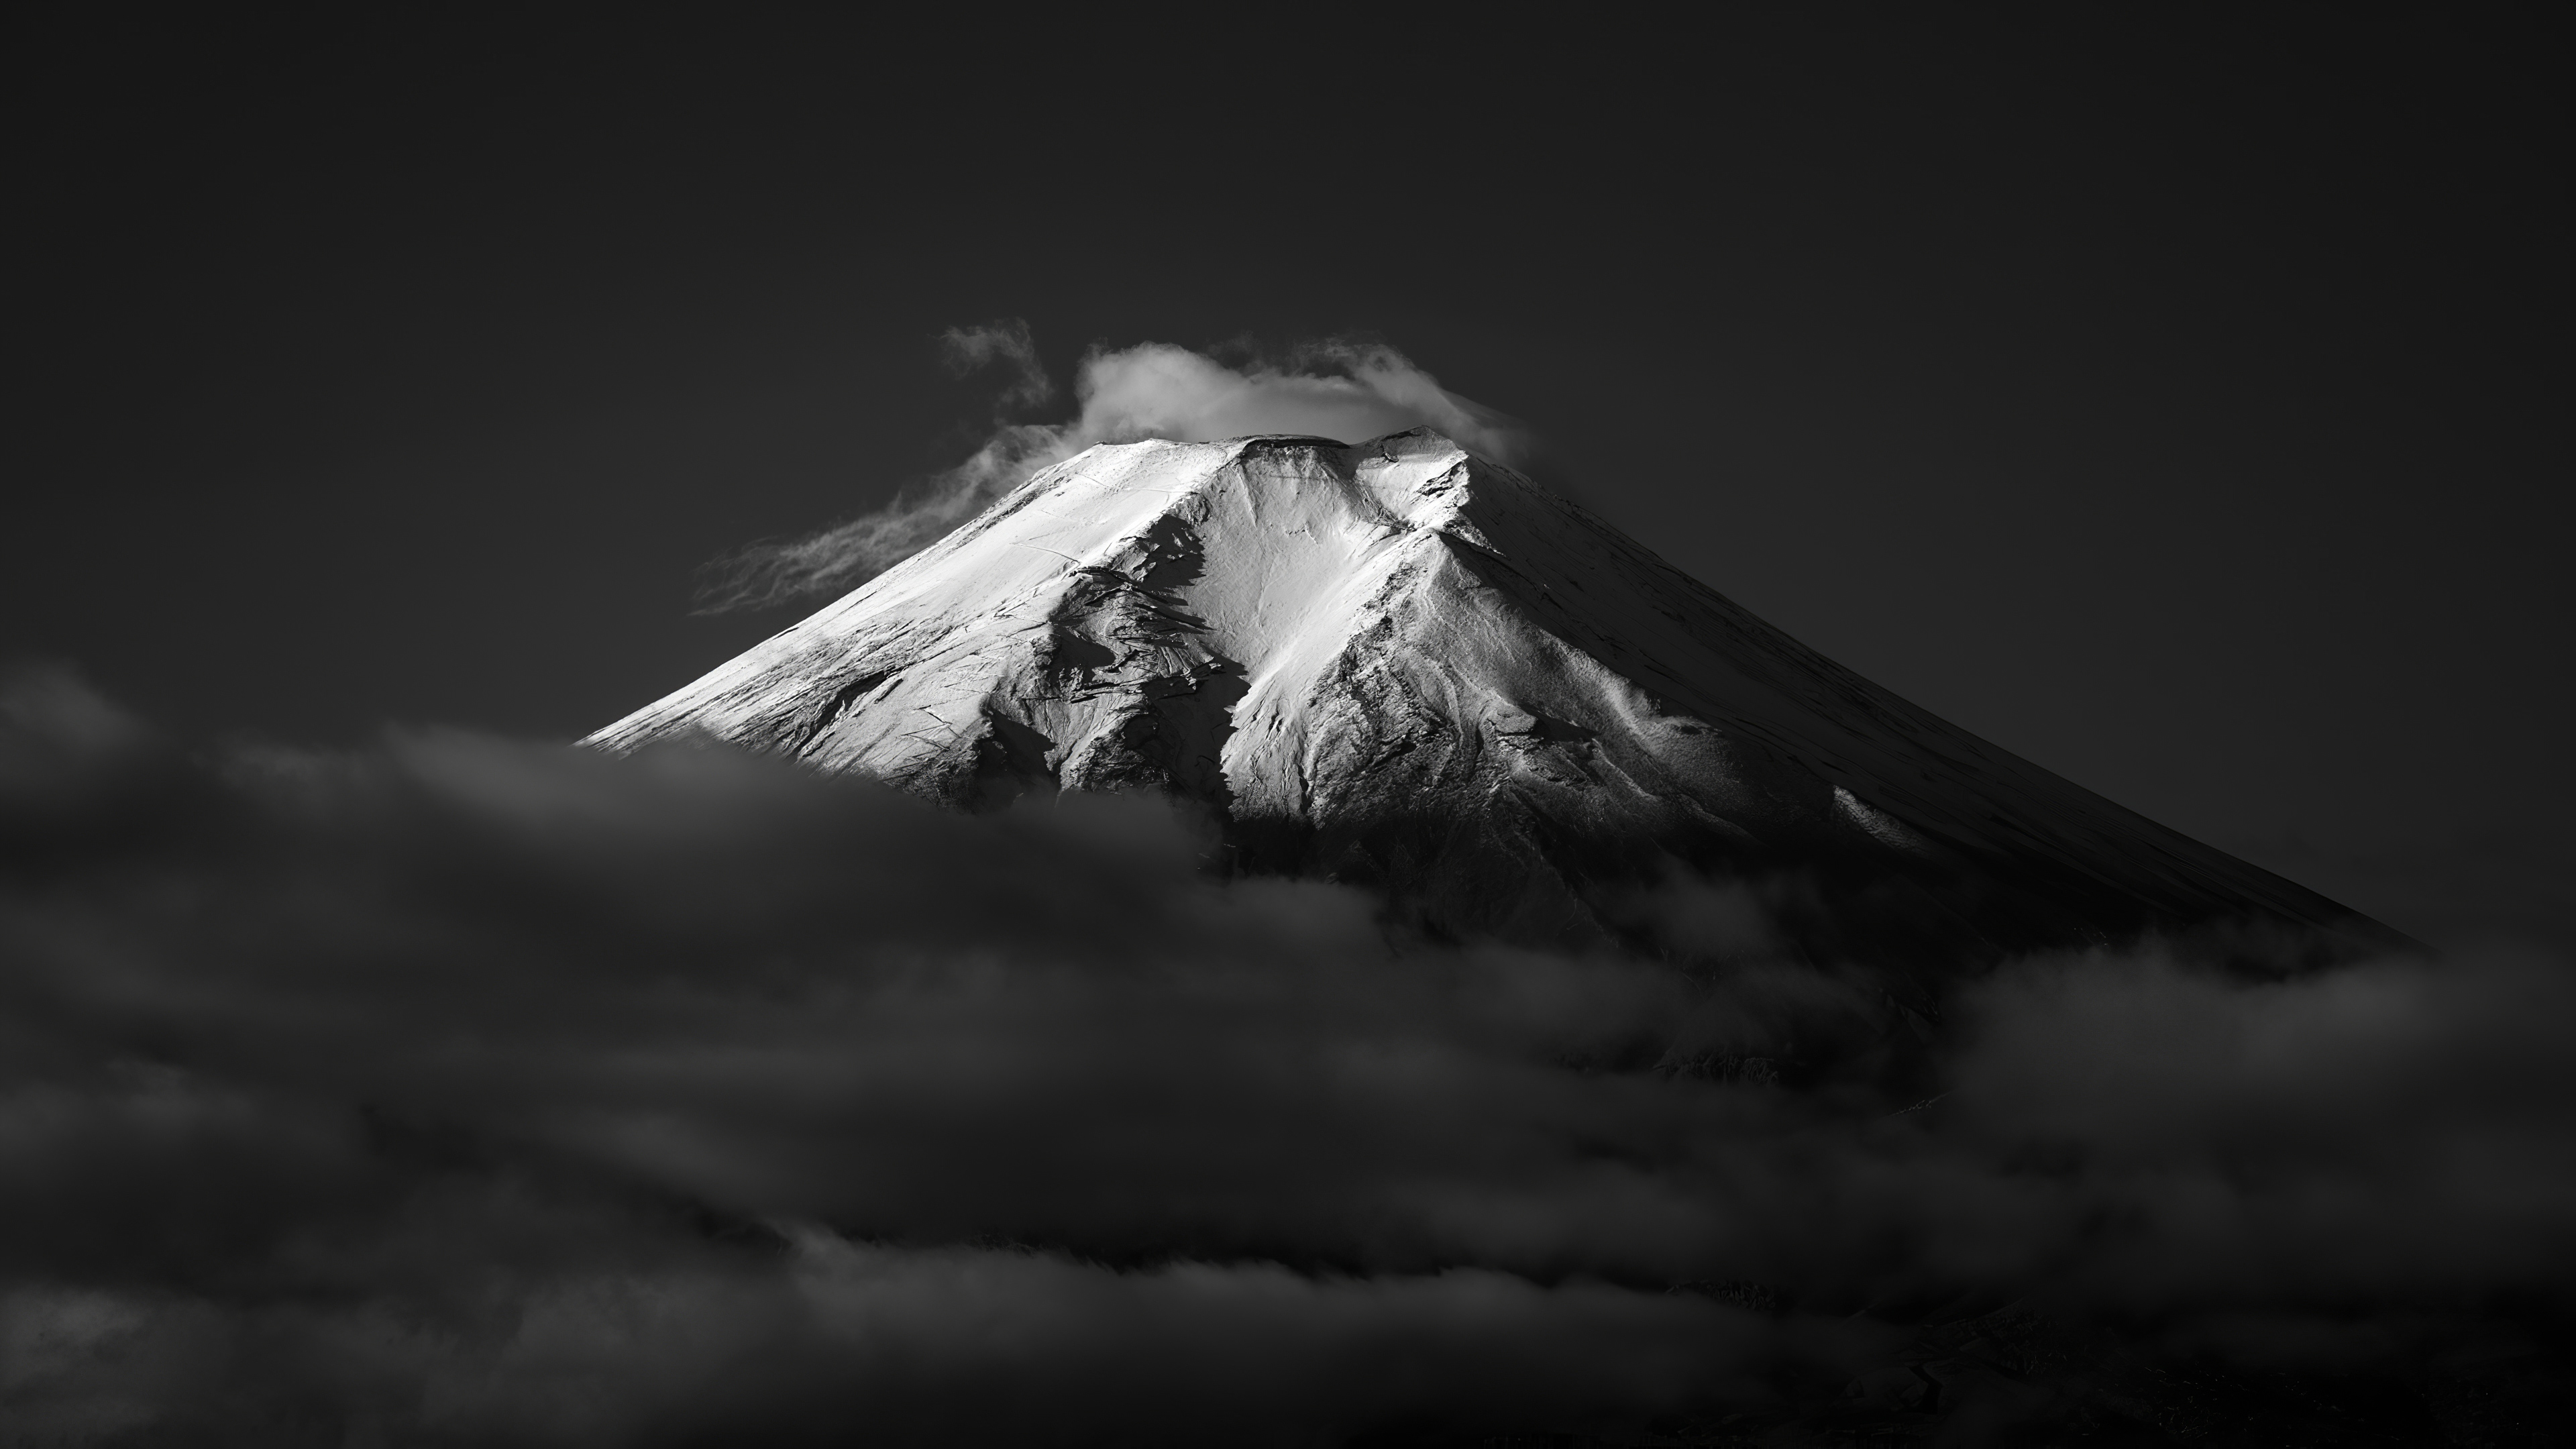 1920x1080 Mount Fuji Monochrome Laptop Full HD 1080P HD 4k ...